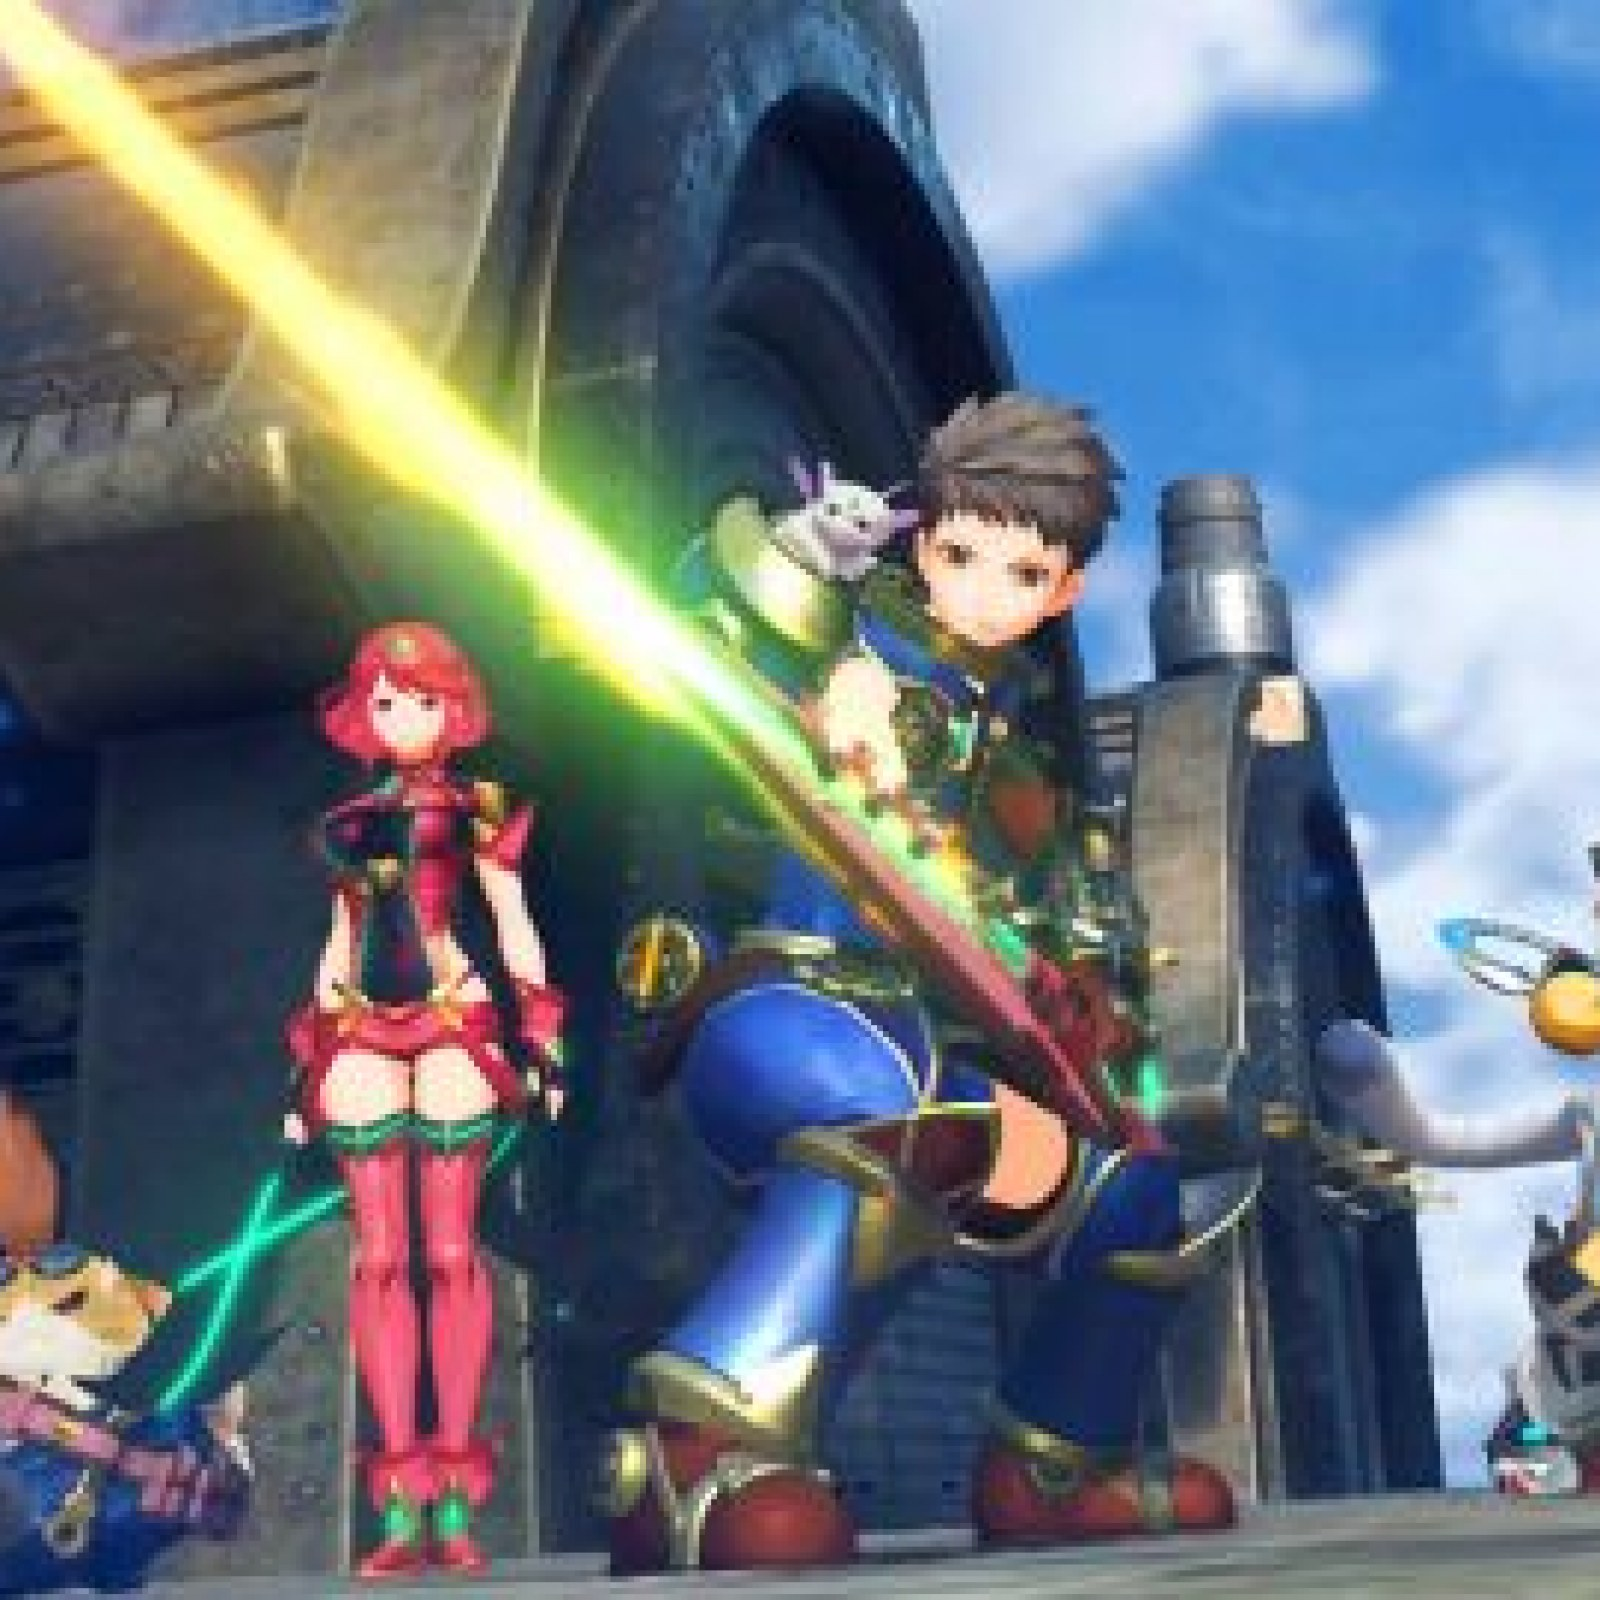 Nintendo eShop Update March 29: 'Xenoblade Chronicles 2' DLC